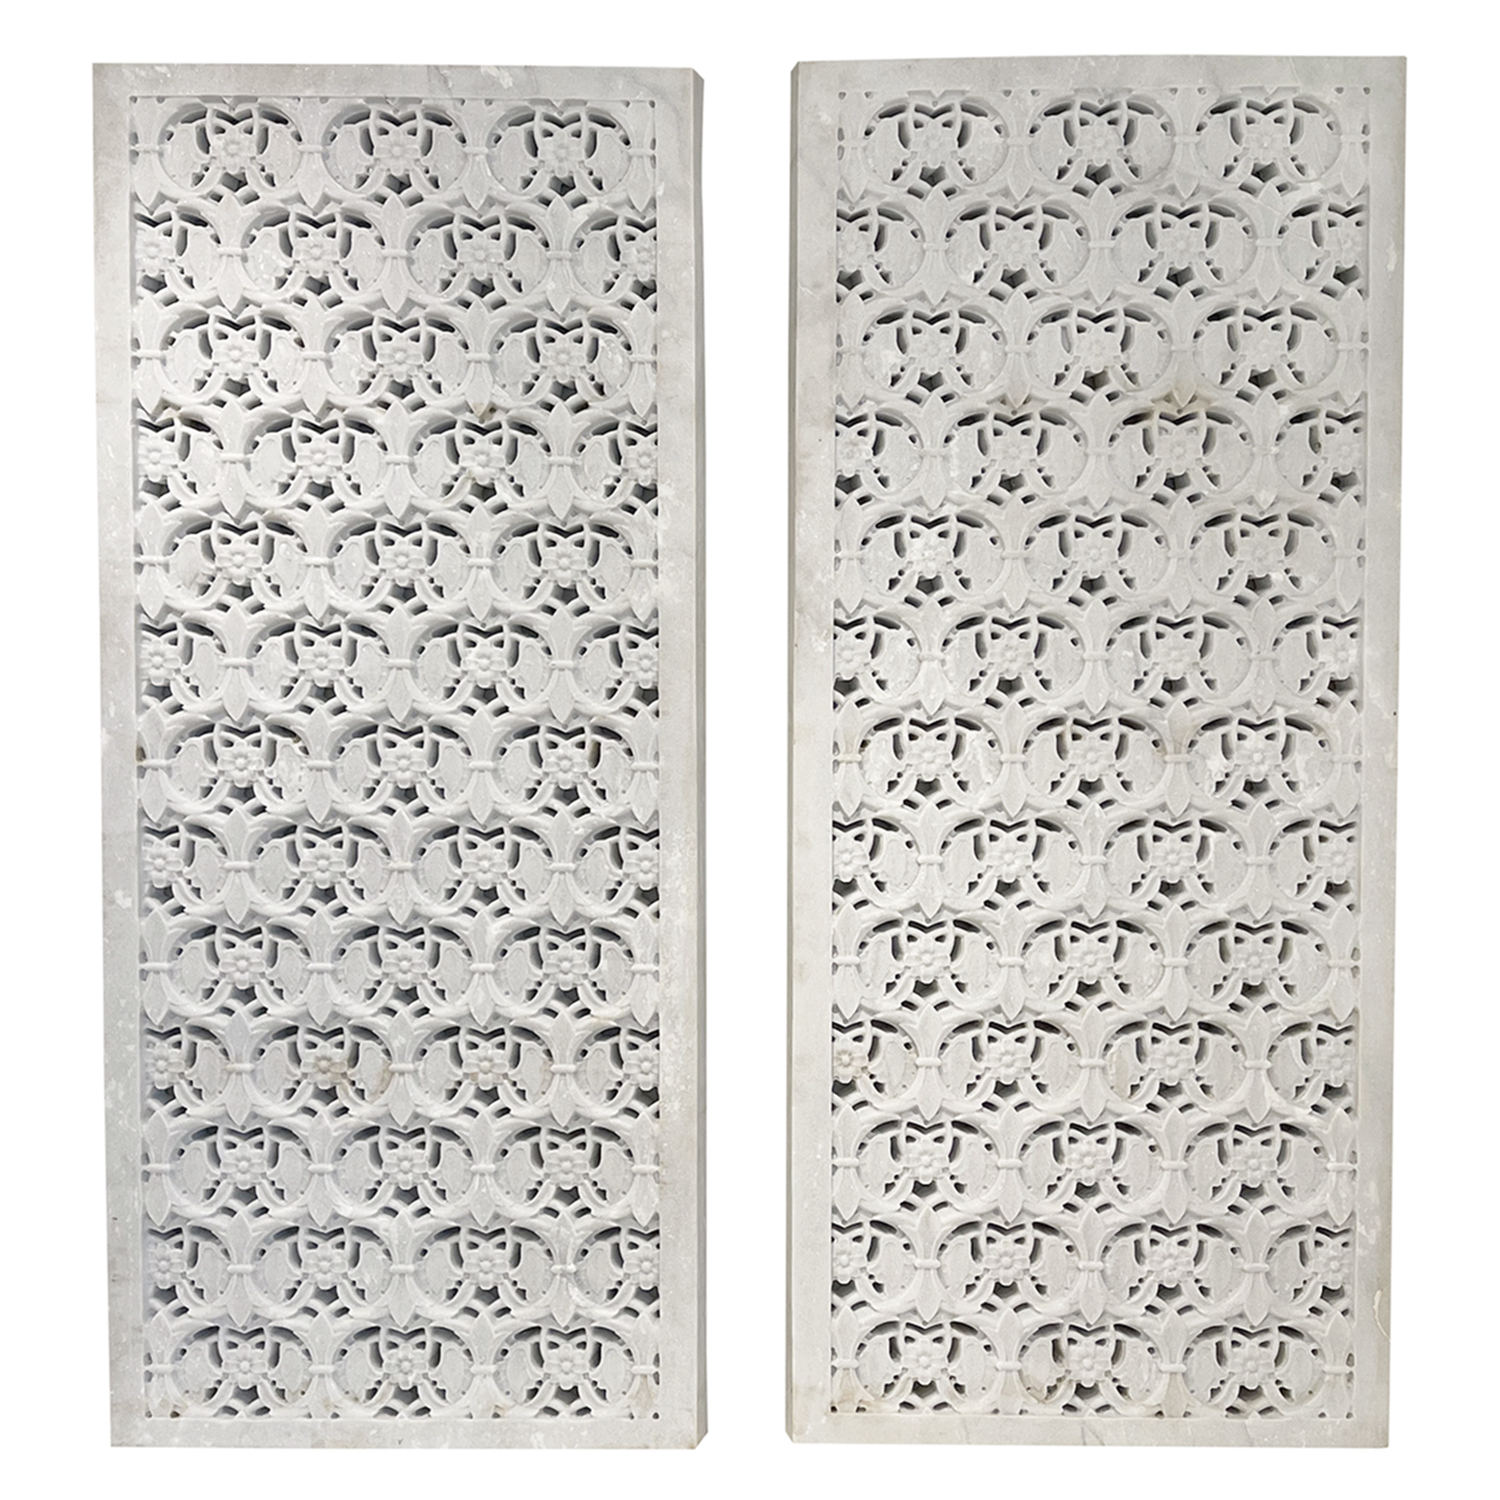 Pair of Floral Jali Wall Panels